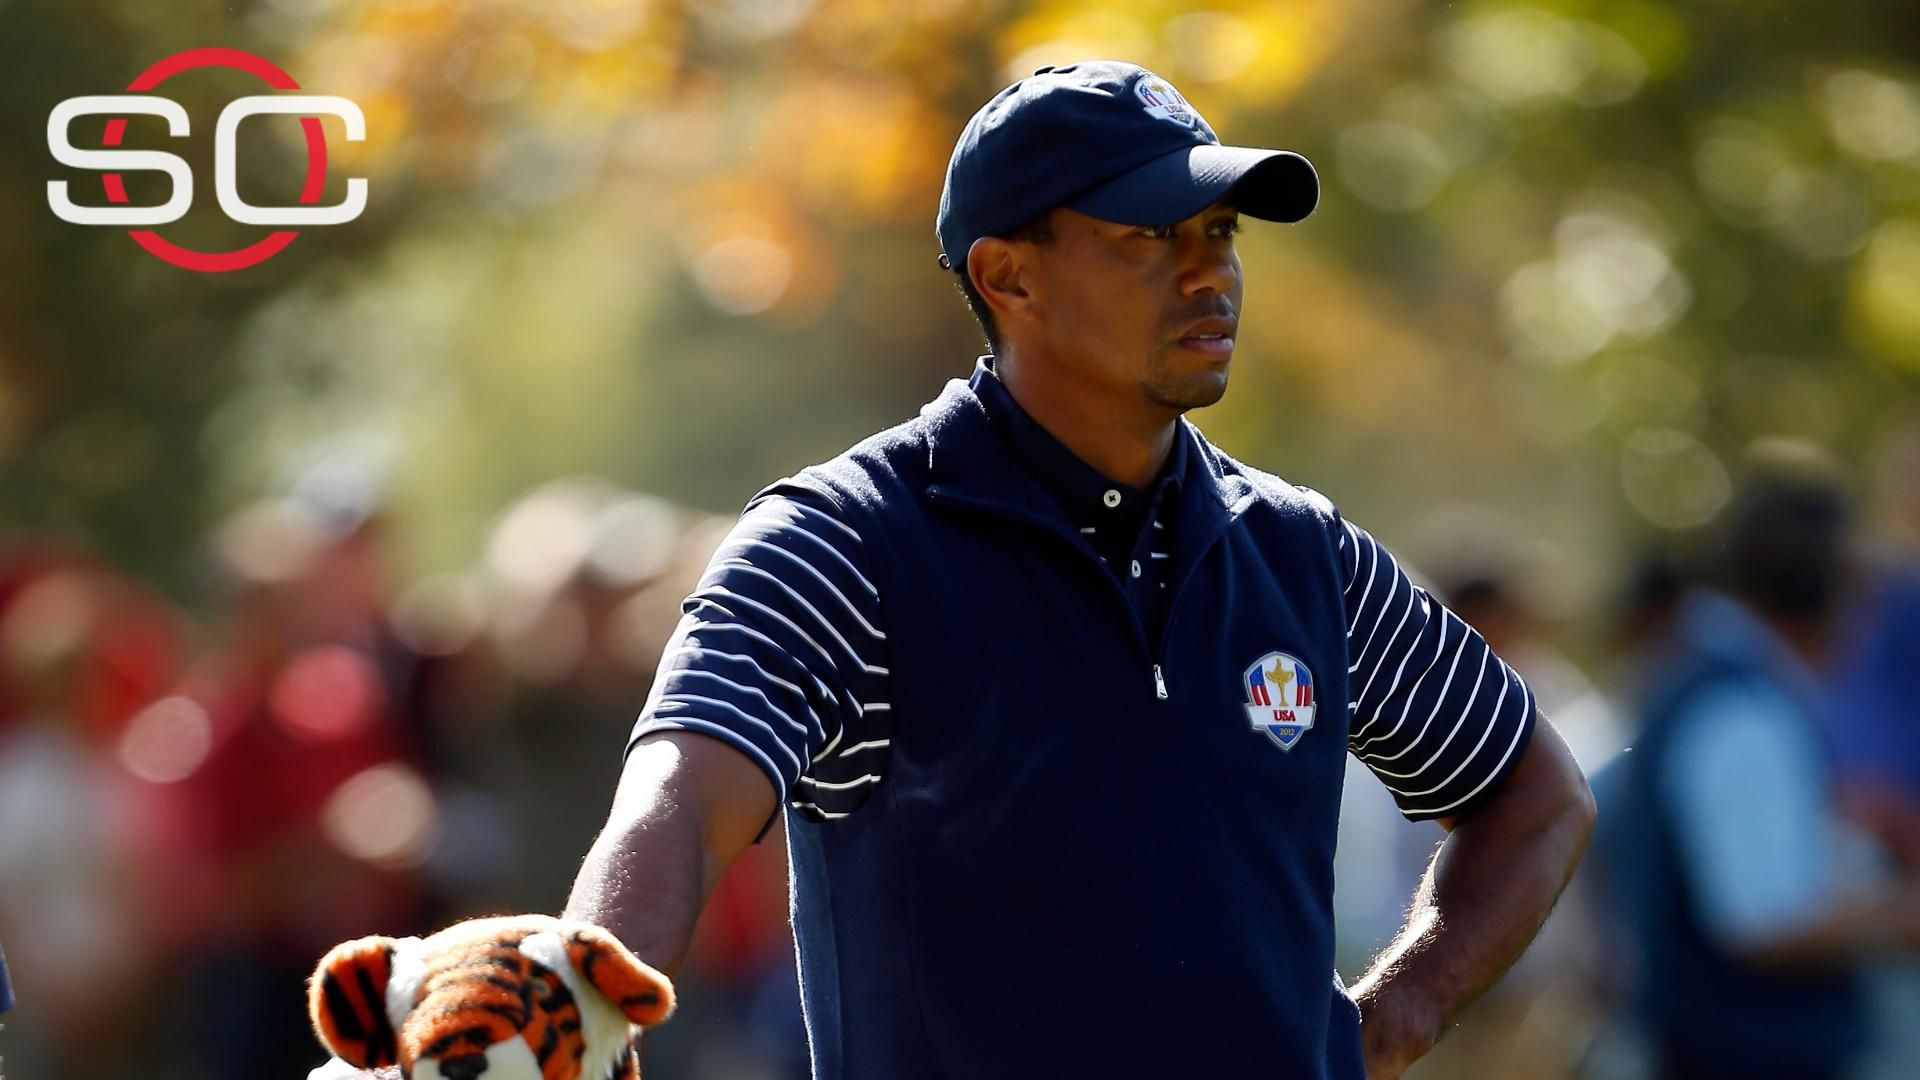 https://secure.espncdn.com/combiner/i?img=/media/motion/2015/1118/dm_151118_golf_tiger_woods_assistant_captain_redo/dm_151118_golf_tiger_woods_assistant_captain_redo.jpg